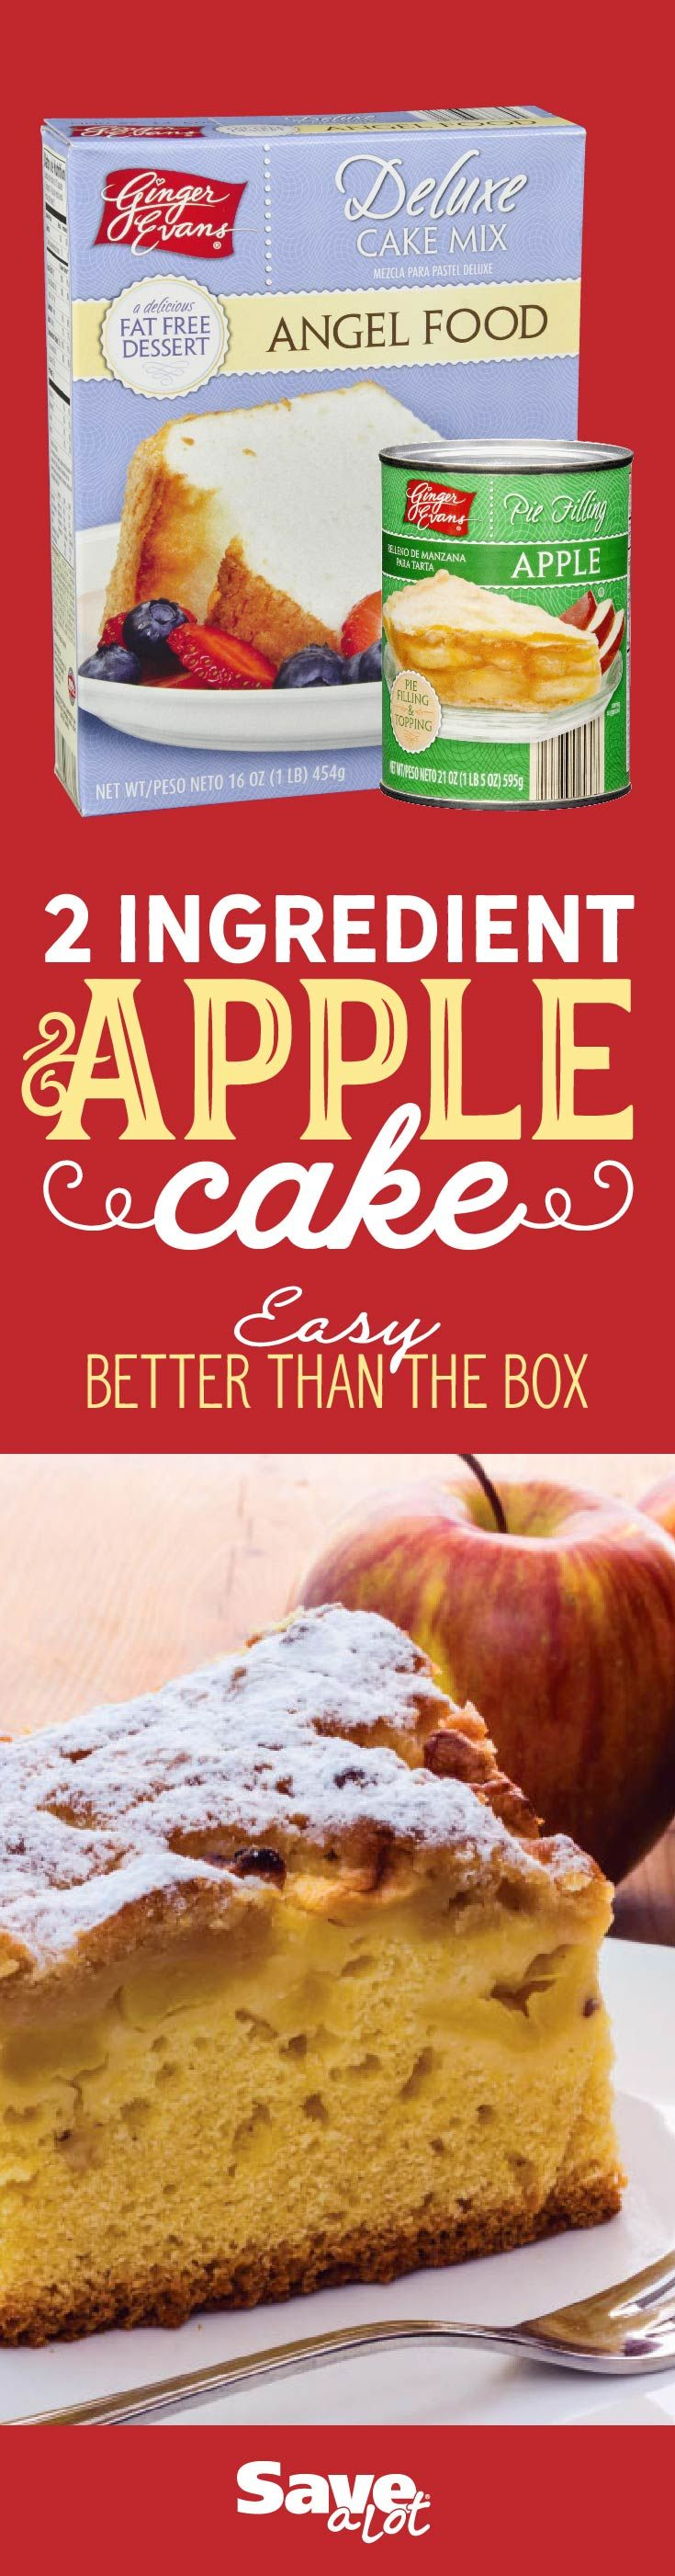 Fall Dessert | 2 Ingredients | Better Than The Box | Cheap | Budget Friendly Dessert | EASY | Fast | Dessert | Fall Dessert | Apple Cake | One Pan Dish | One Pan Dessert | Fall Party | Angel Food | Canned Apple Filling | Dessert for Crowd | #savealotinsiders